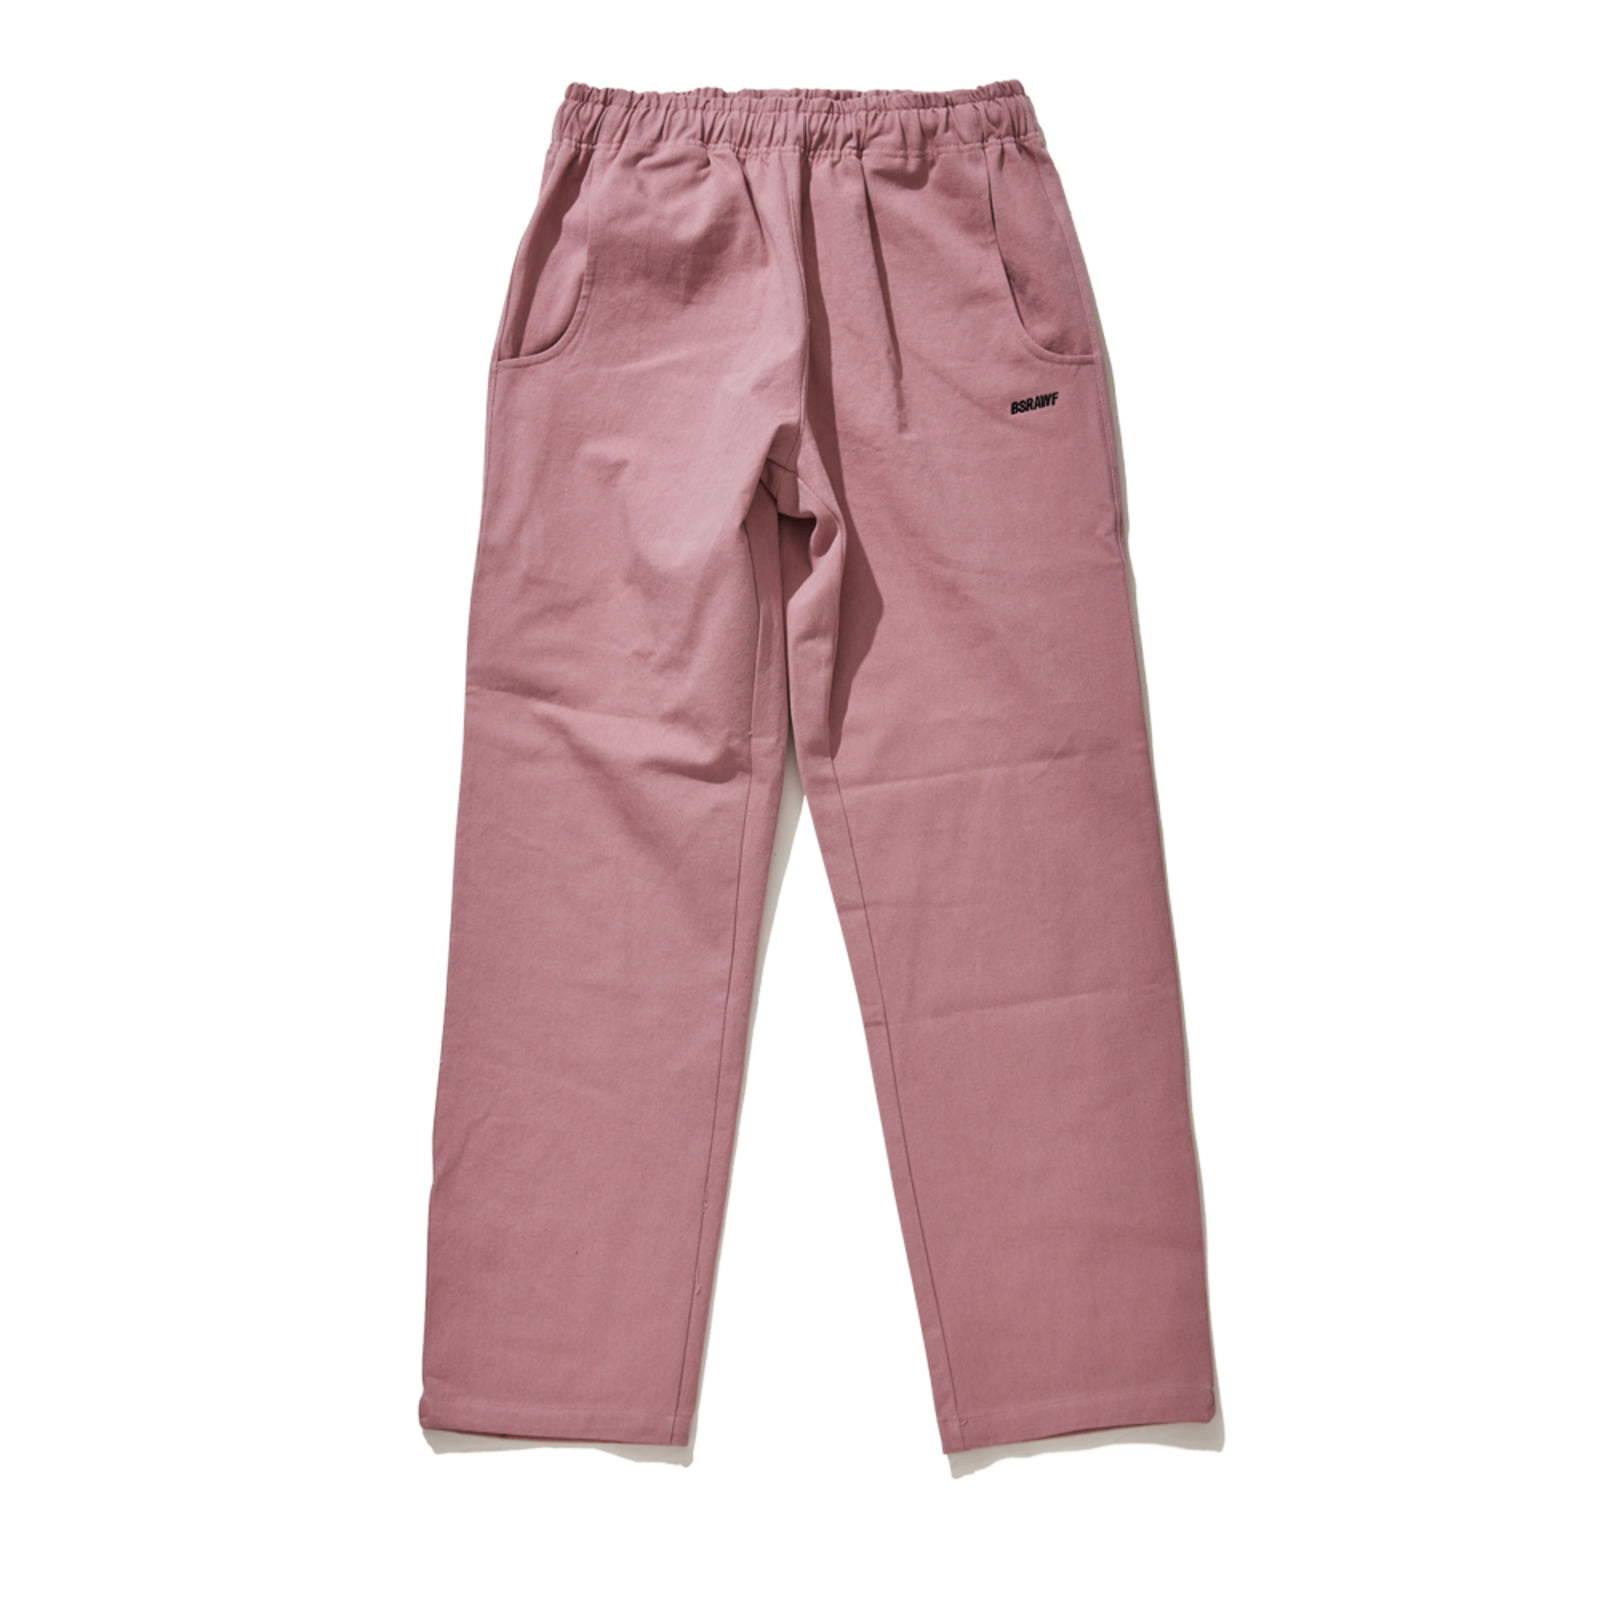 BSR COTTON BASIC TRACK PANTS INDYPINK